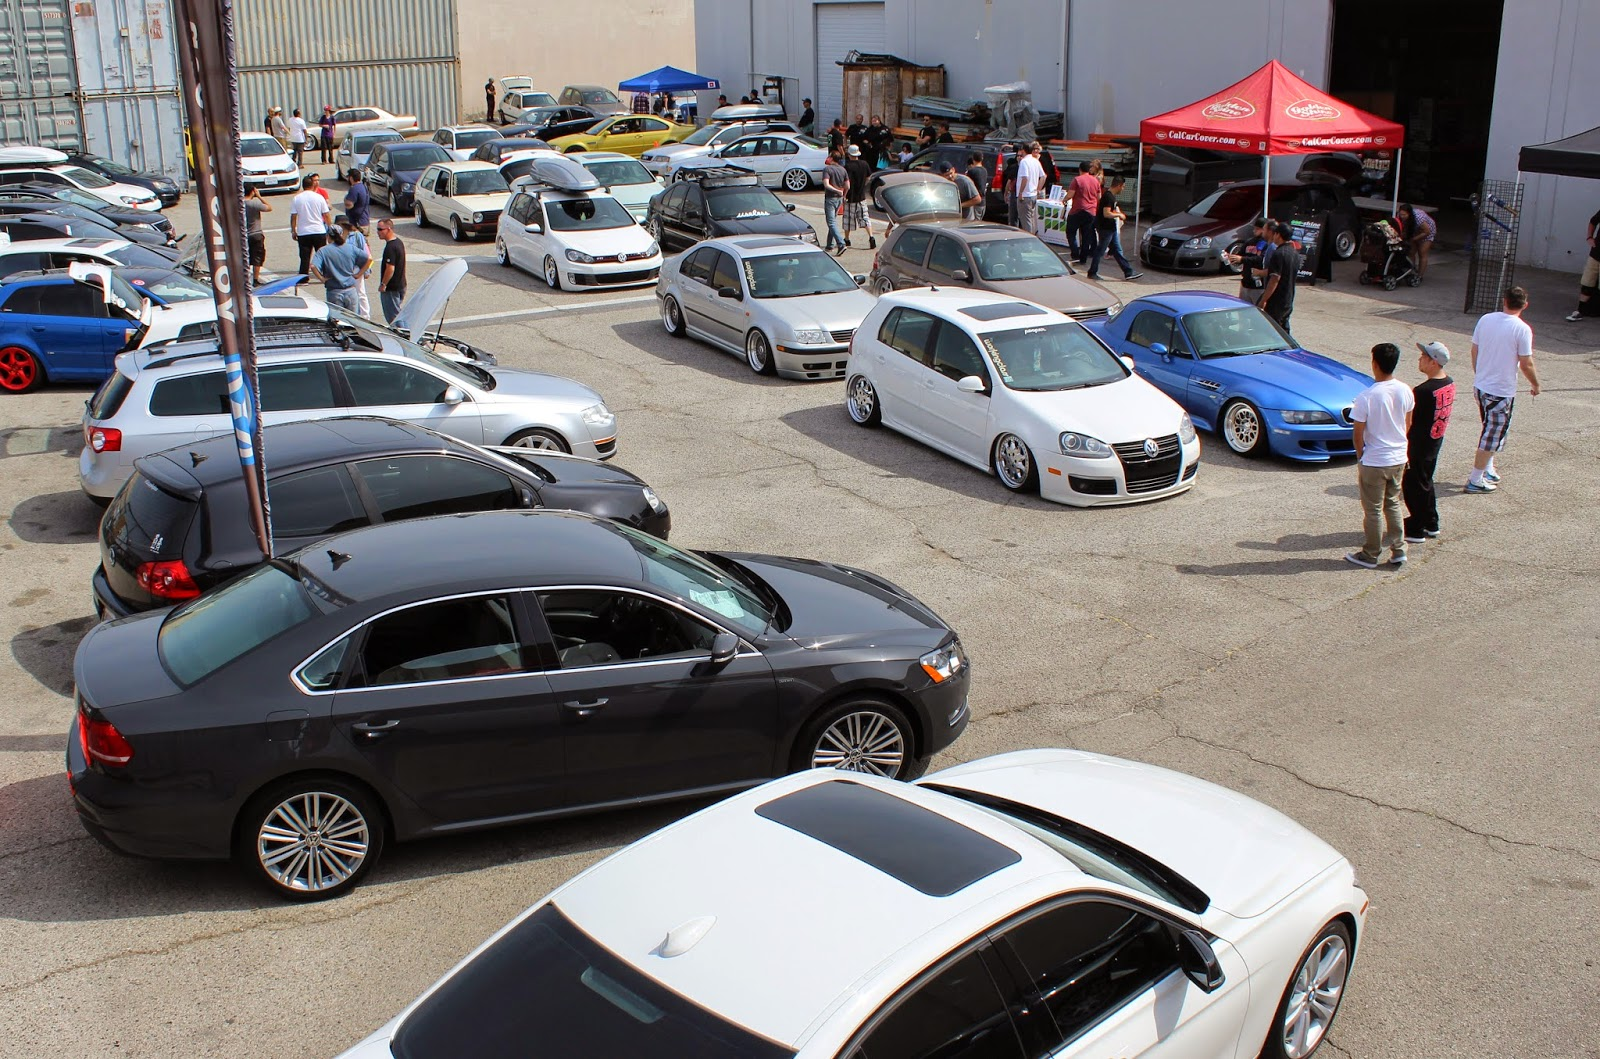 Covering Classic Cars Dates Announced For The California Car - Bay area car shows this weekend